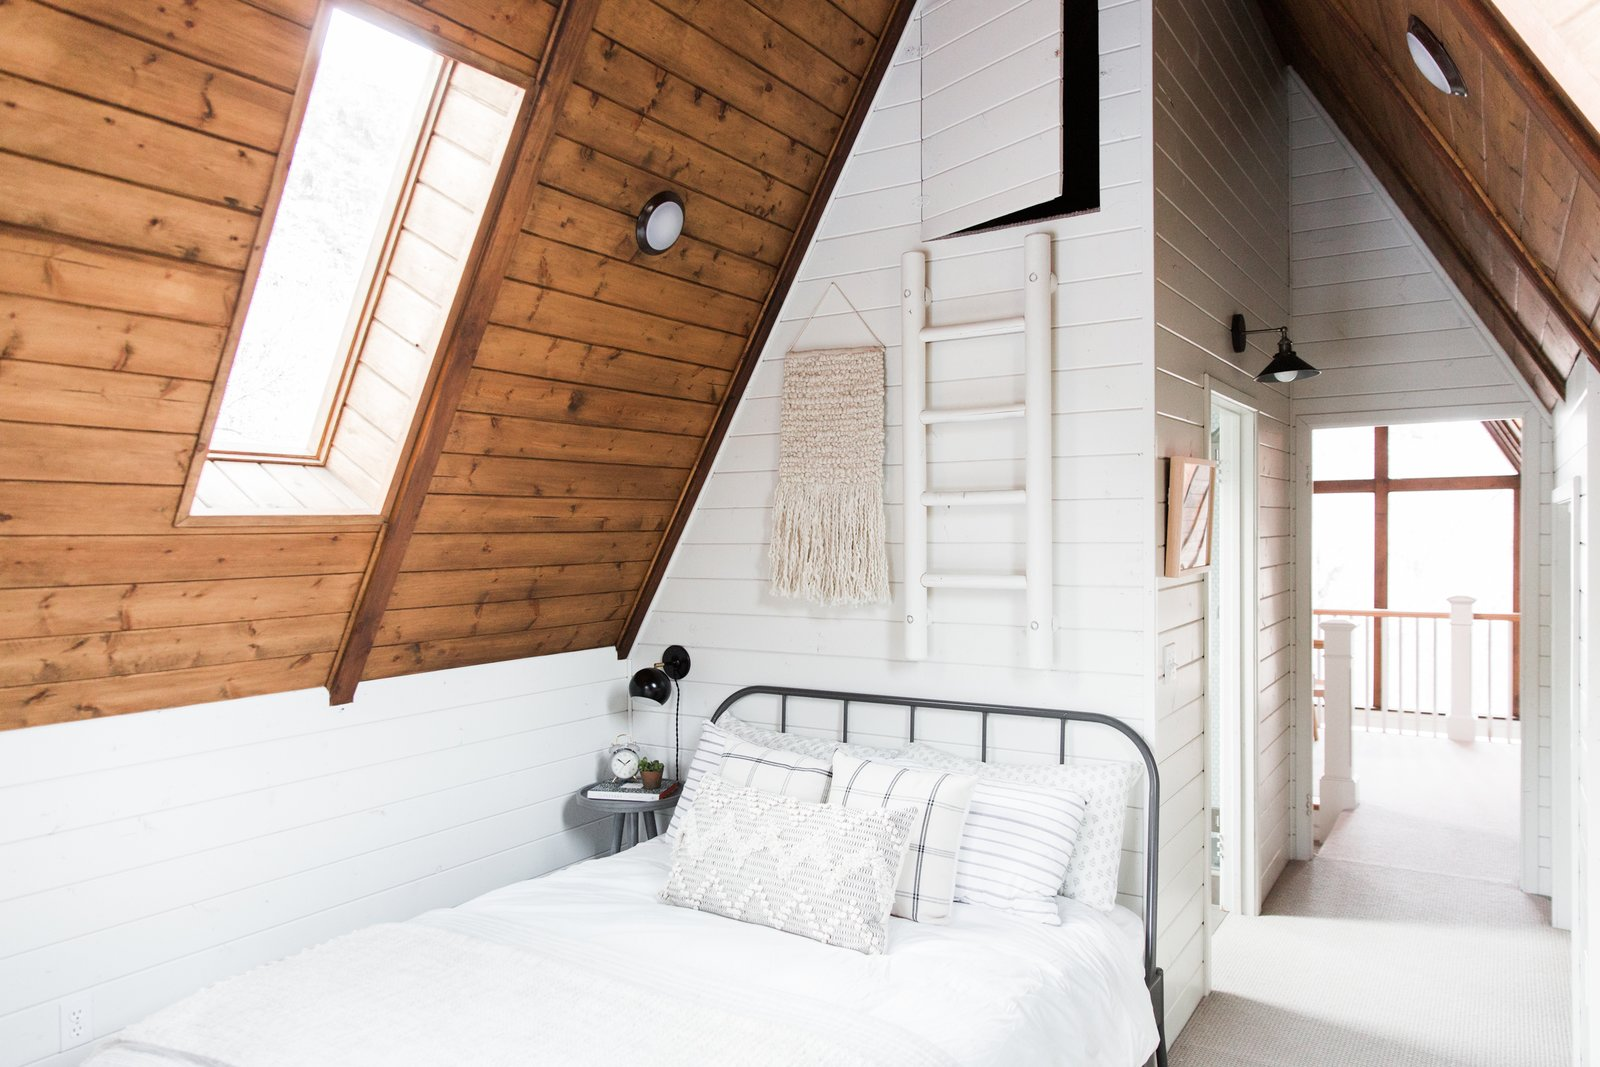 Plaid Pillows And A Weave On The Wall Bring Folk Art Feel To The Bedroom